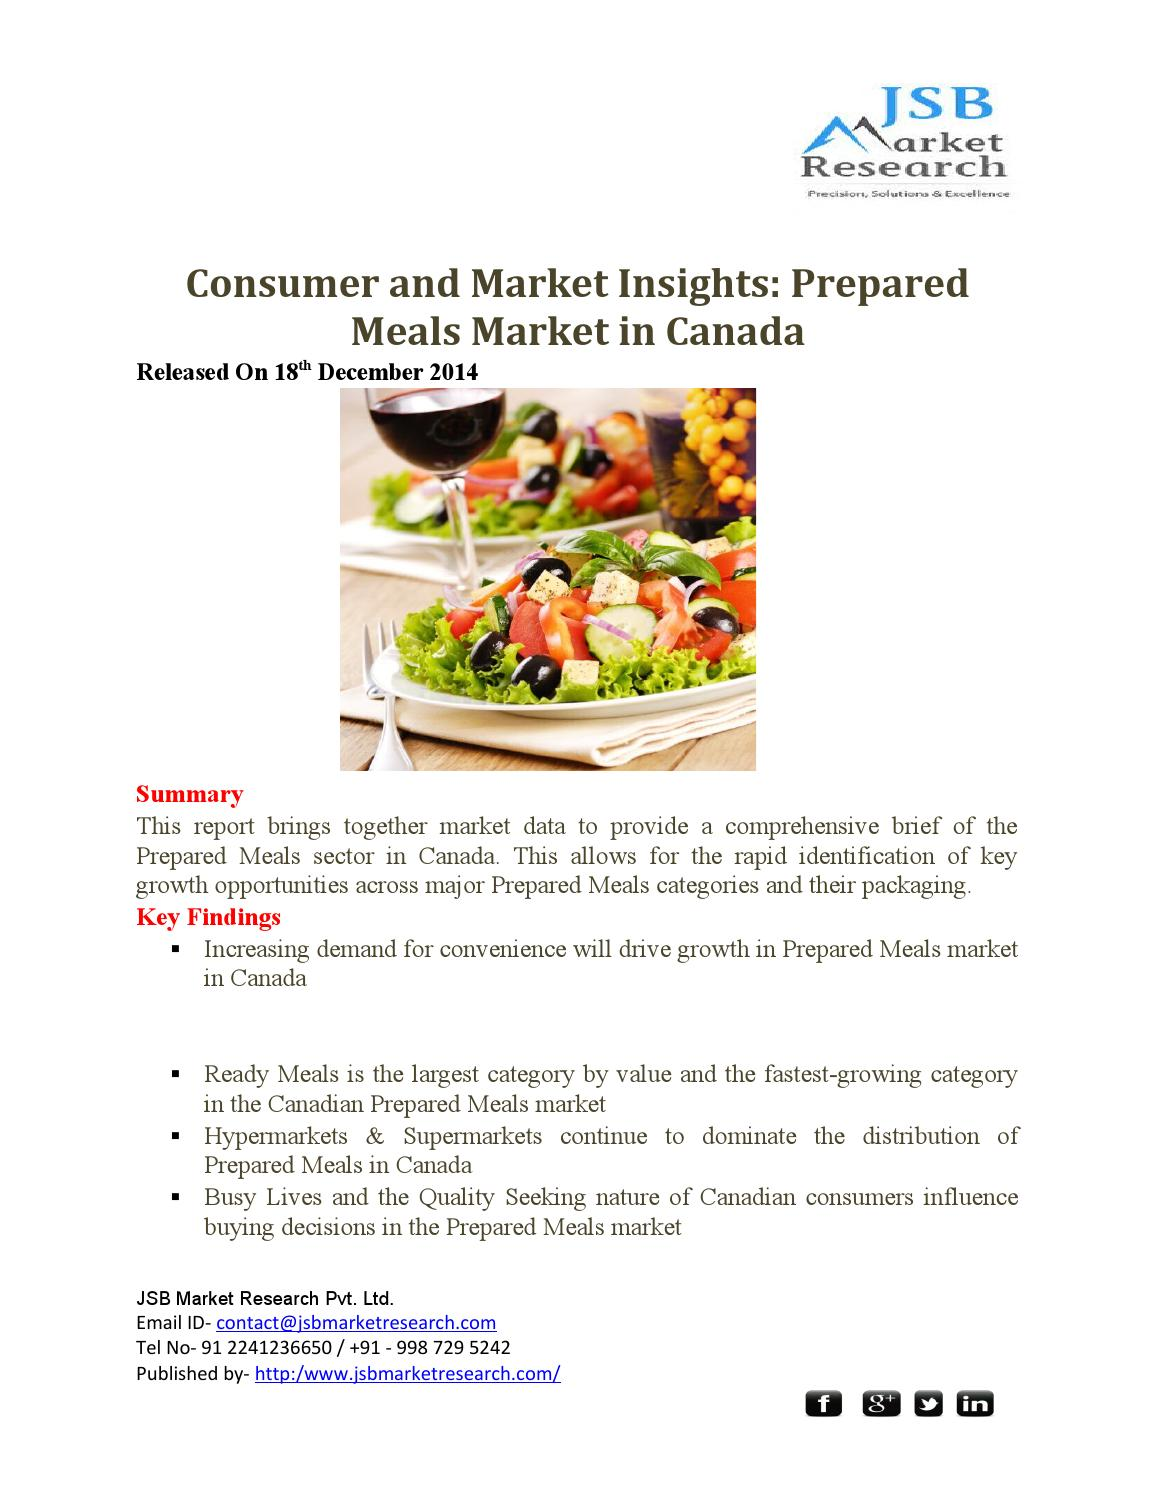 JSB Market Research : Consumer and Market Insights: Prepared Meals ...